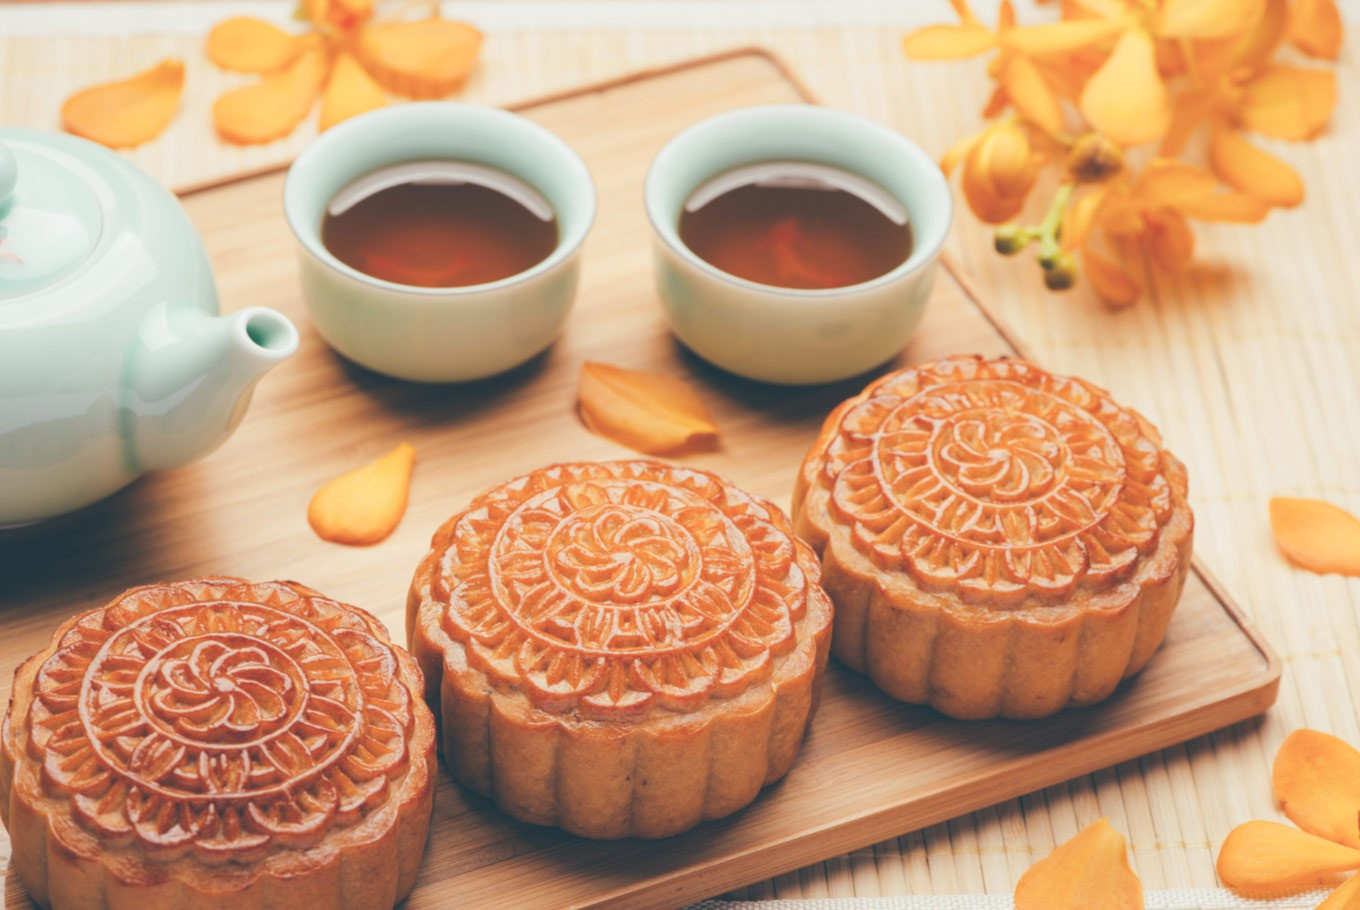 Singaporeans, Malaysians celebrate Mid-Autumn Festival in